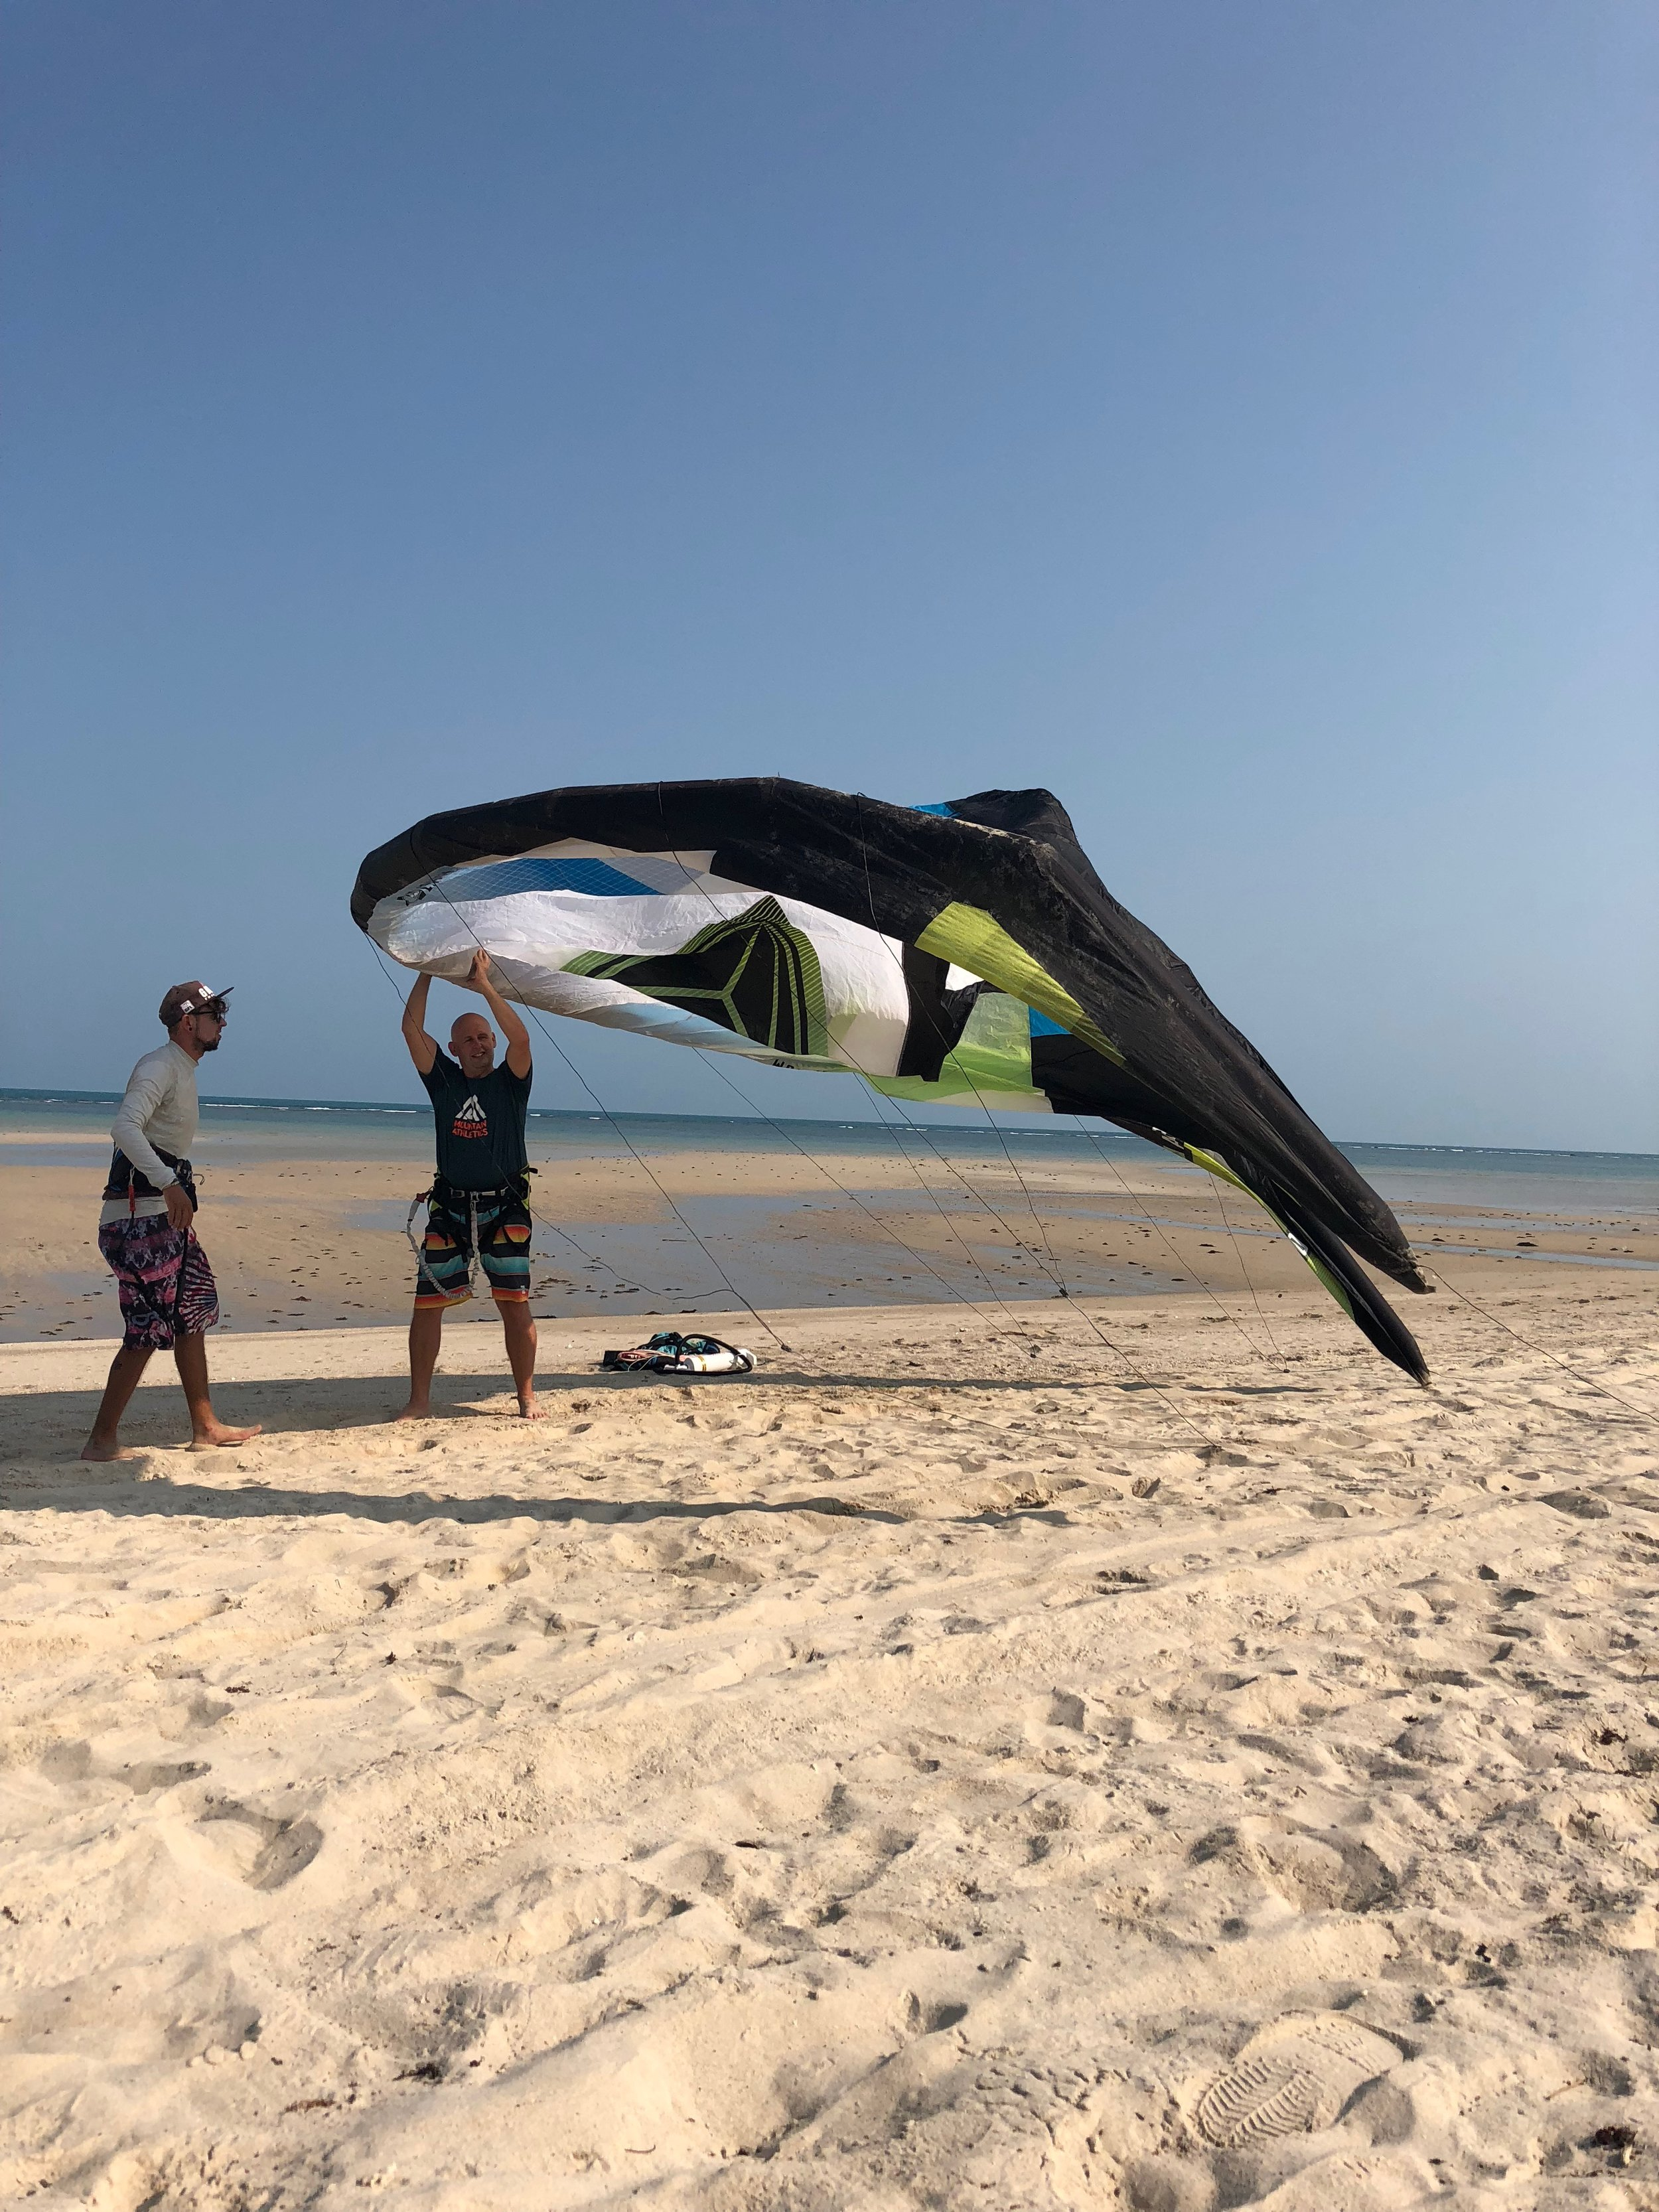 First kiting experience....